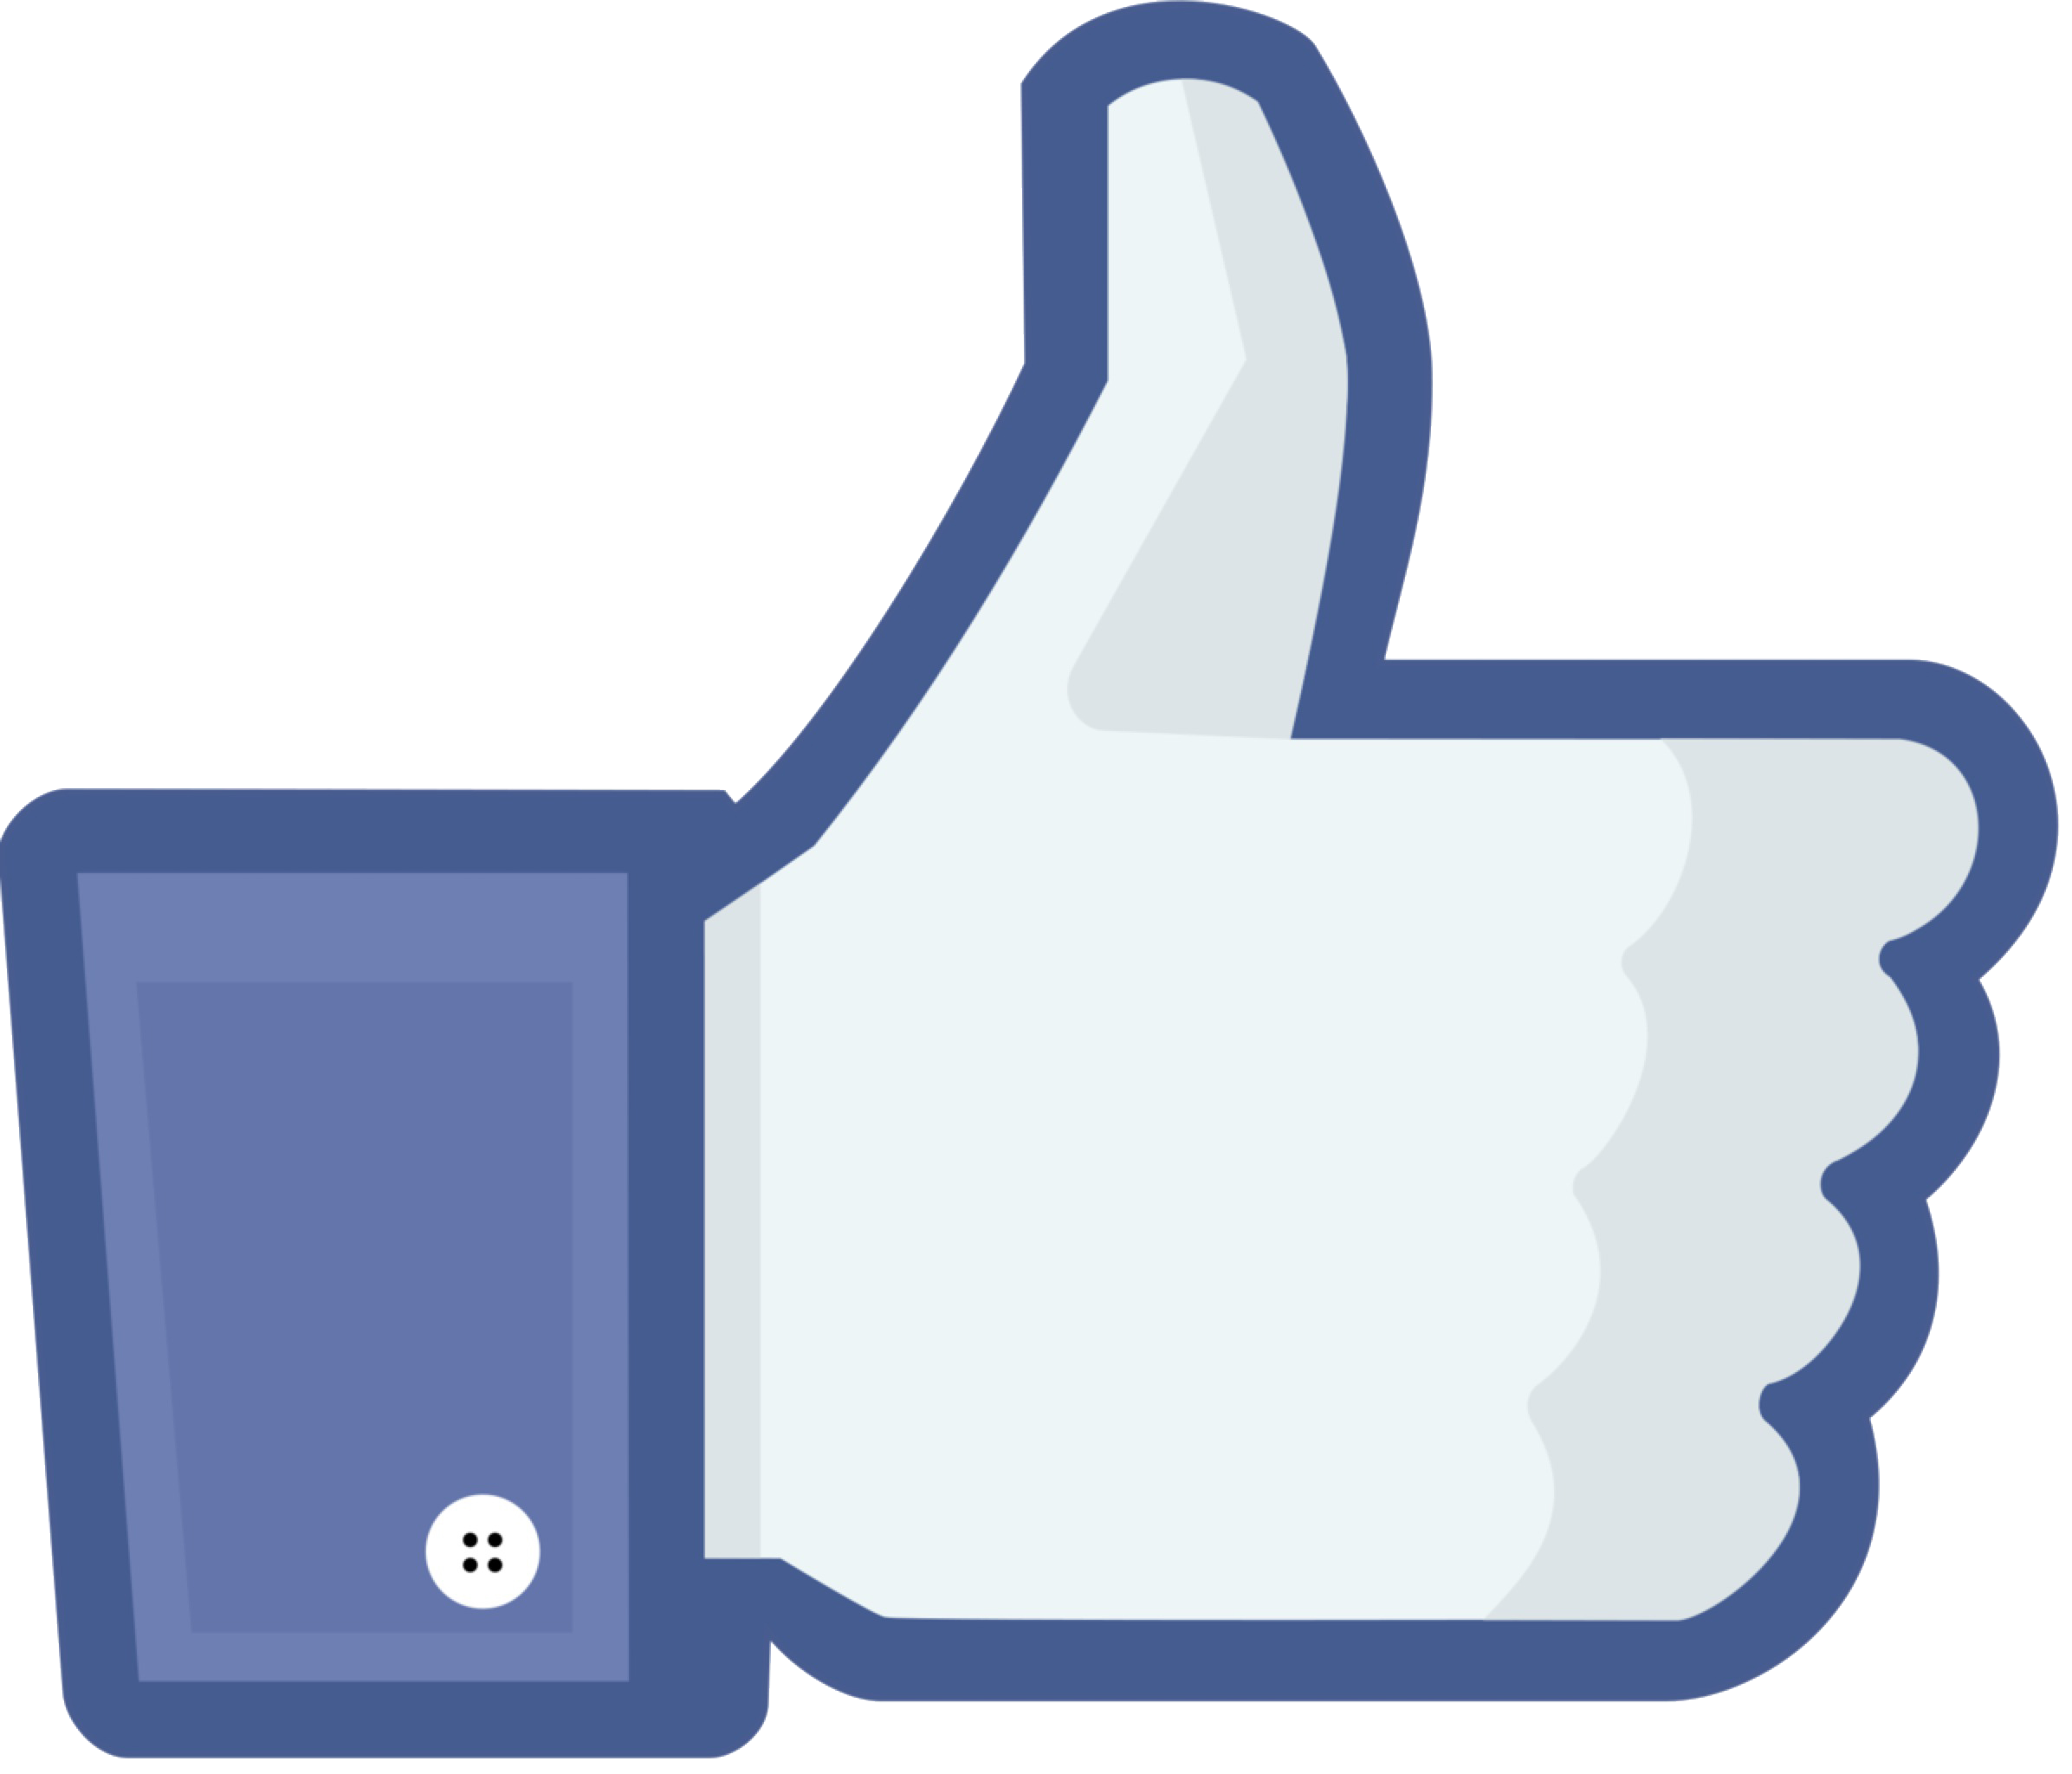 Facebook clipart tif. Like png